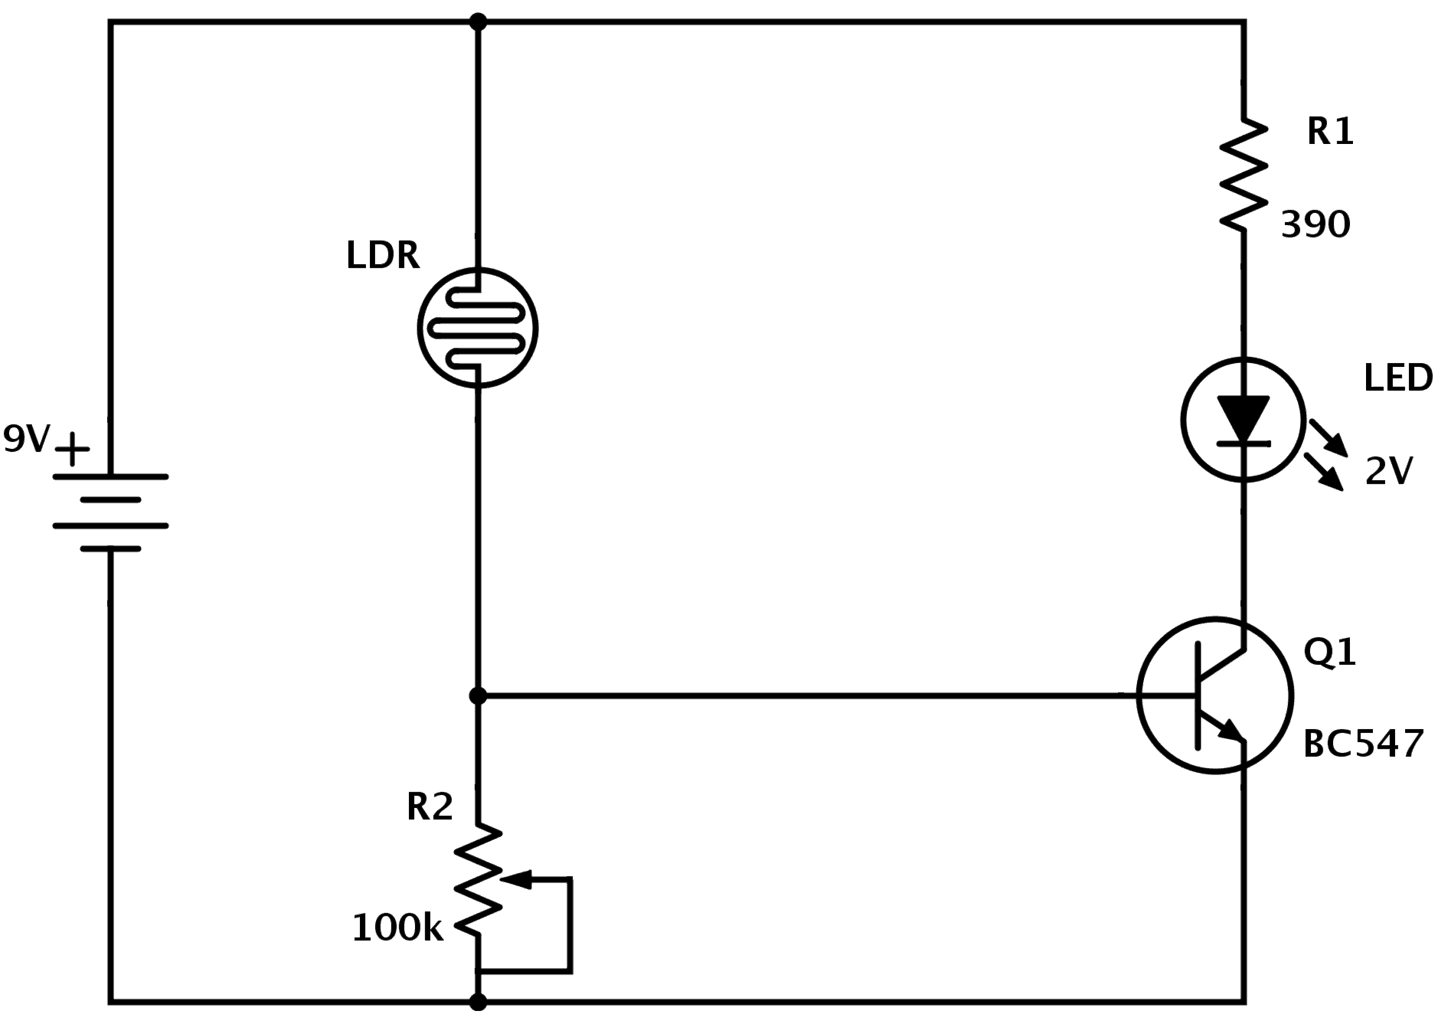 circuit diagram how to read and understand any schematic rh build electronic circuits com diagram circuit schematic synthesizer schematic circuit diagram walkie talkie pdf